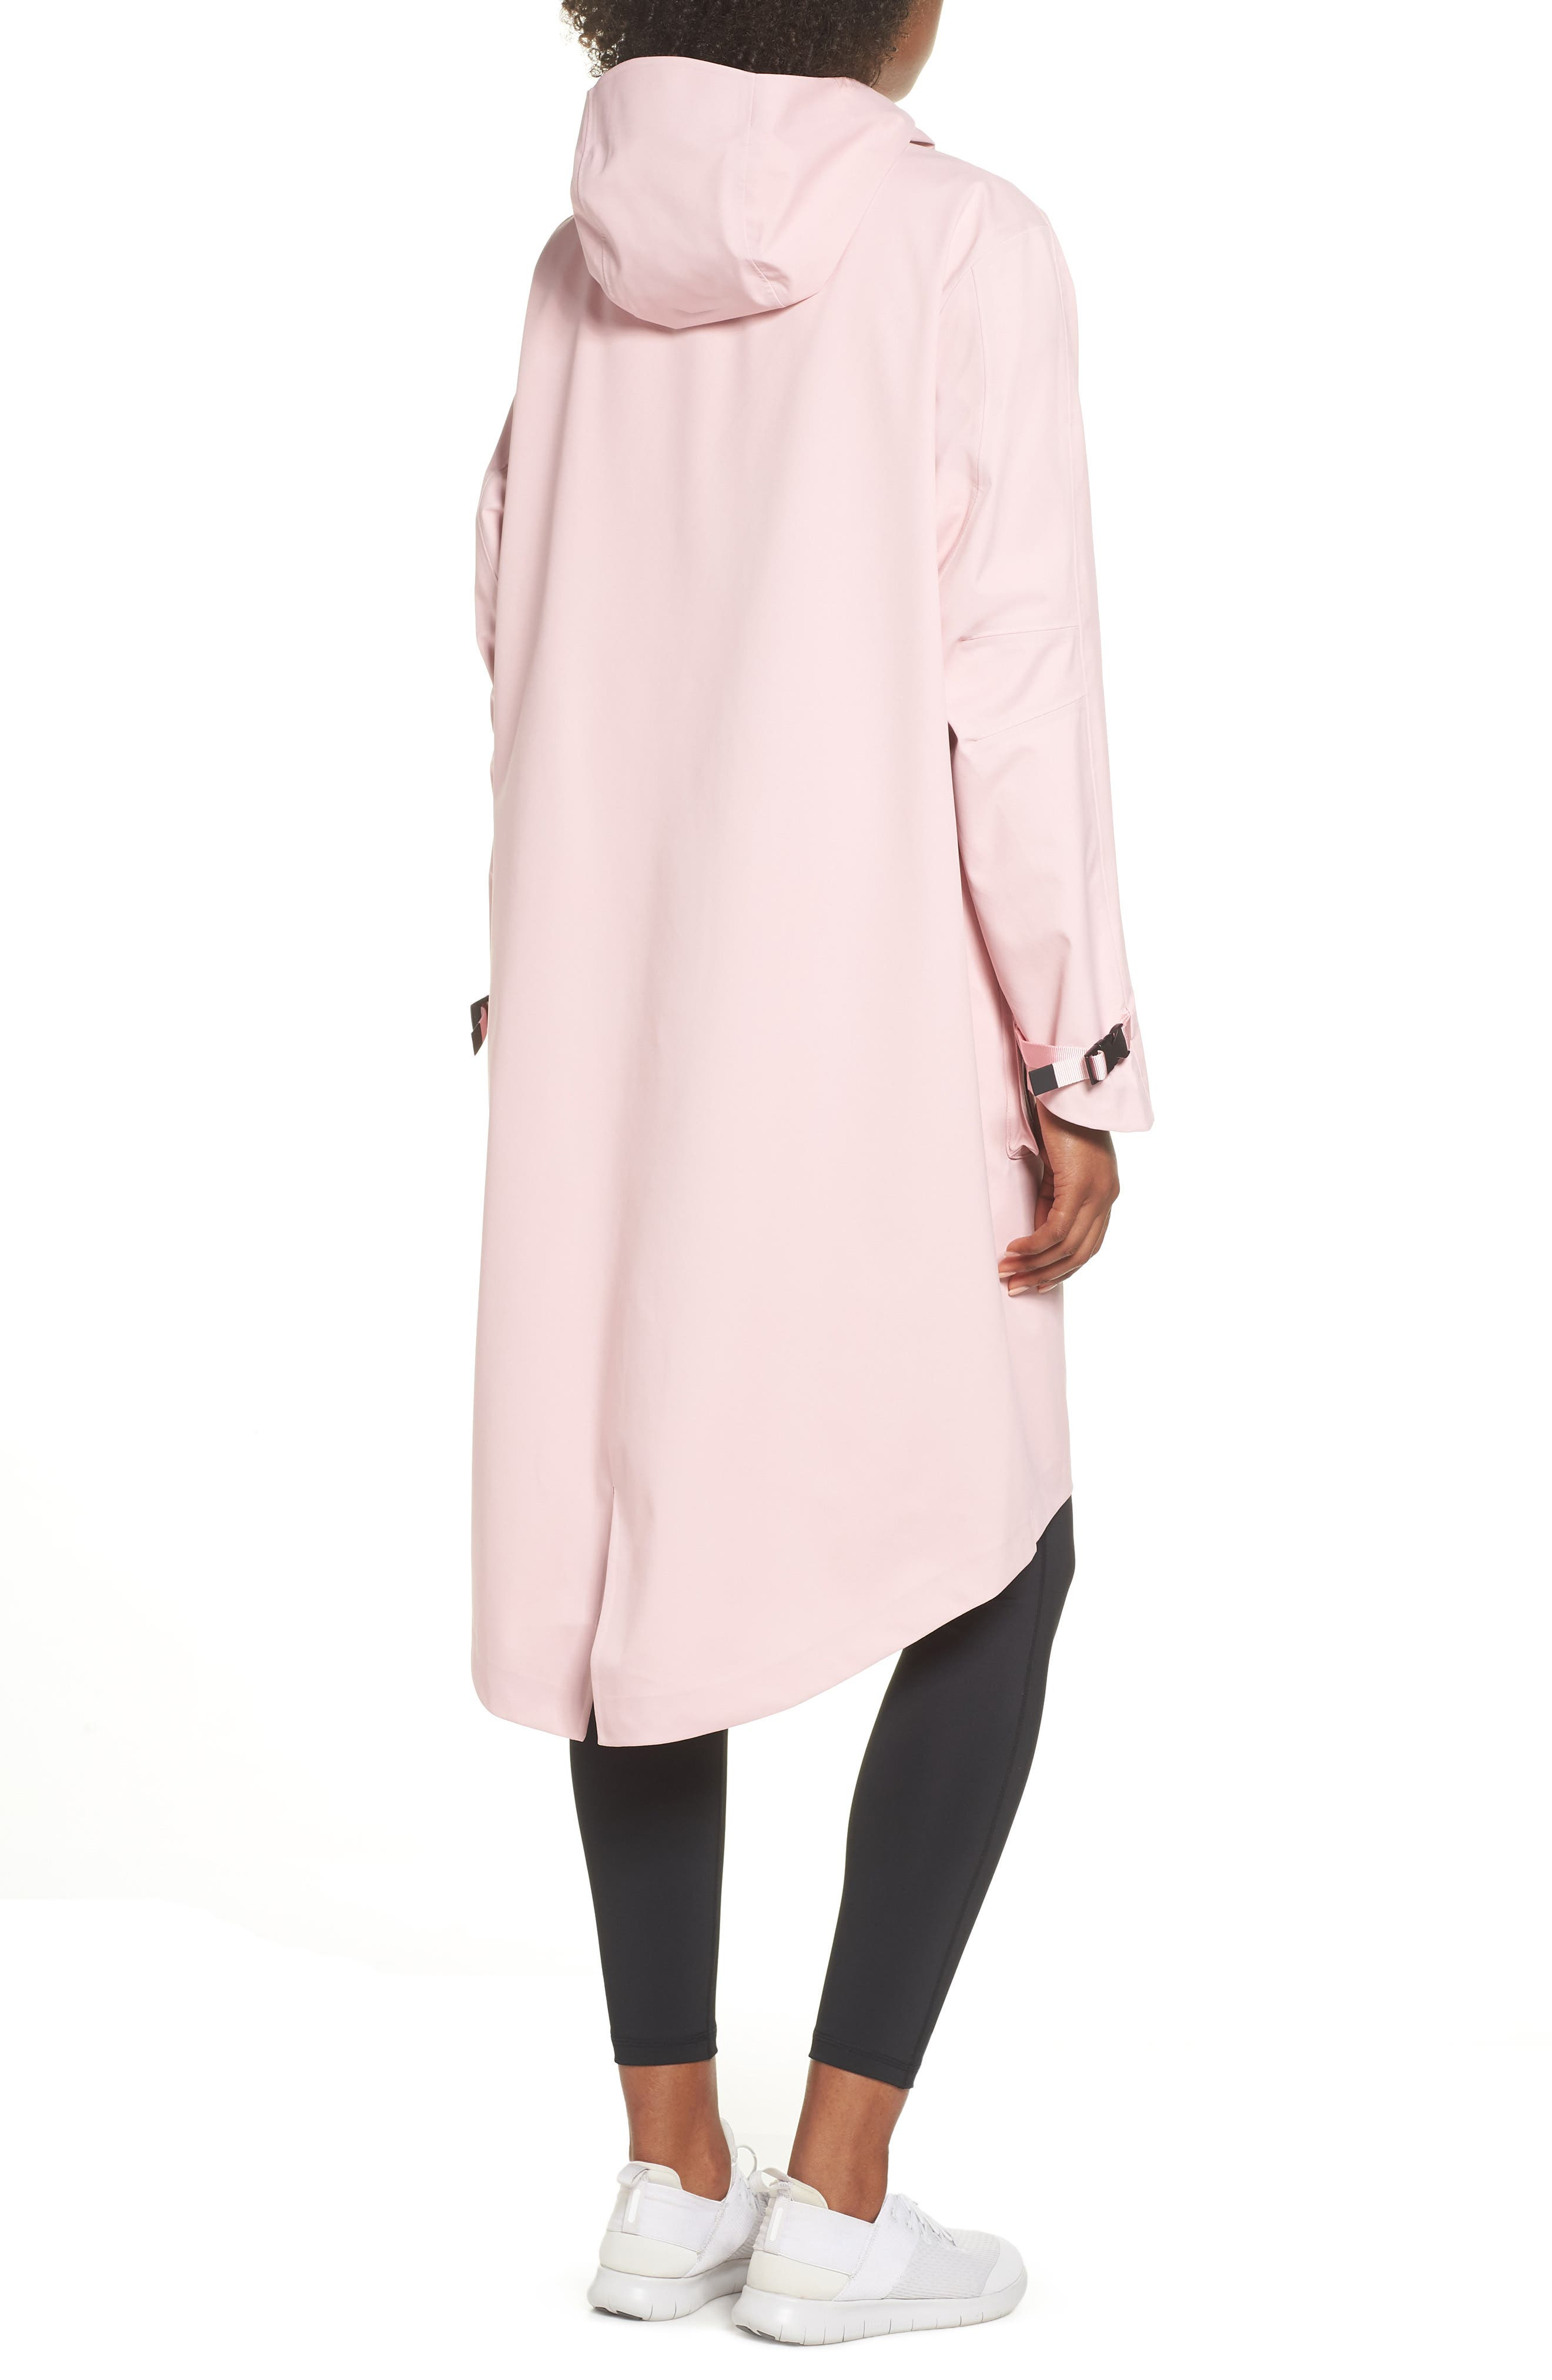 NRG Women's Hooded Anorak,                             Alternate thumbnail 2, color,                             Arctic Punch/ Arctic Punch